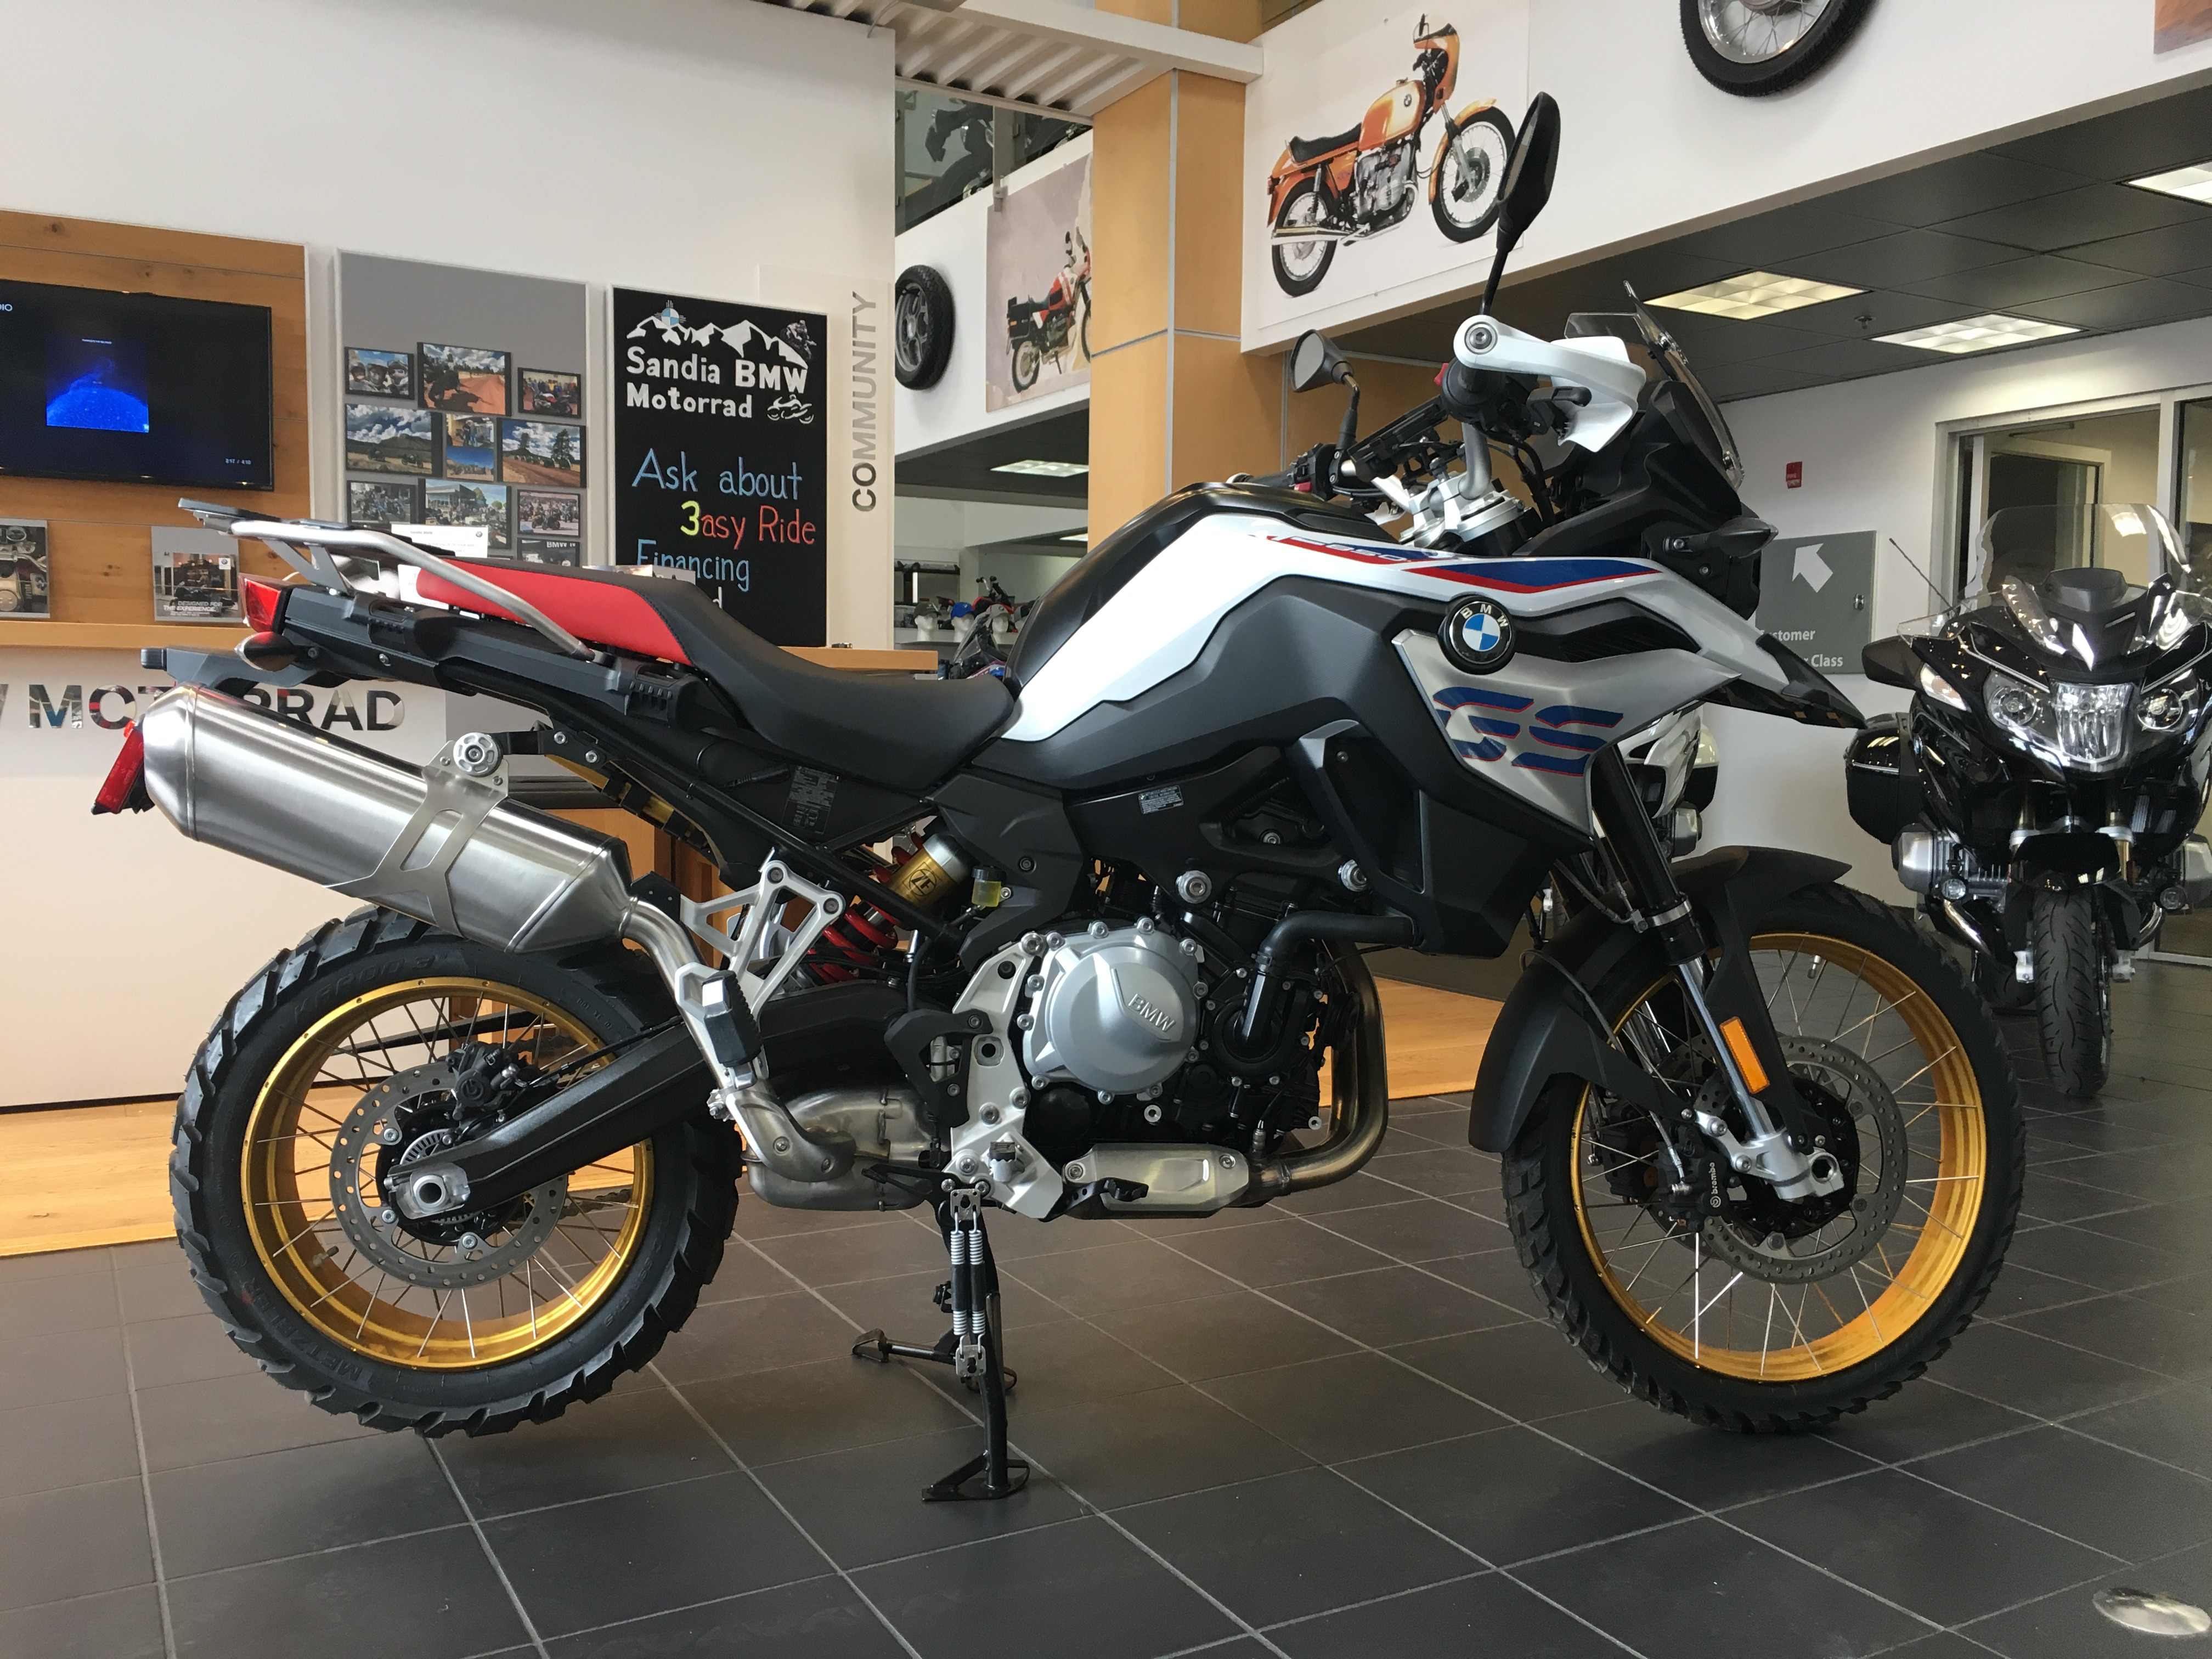 New Motorcycle Inventory - F850GS - Sandia BMW Motorcycles ...